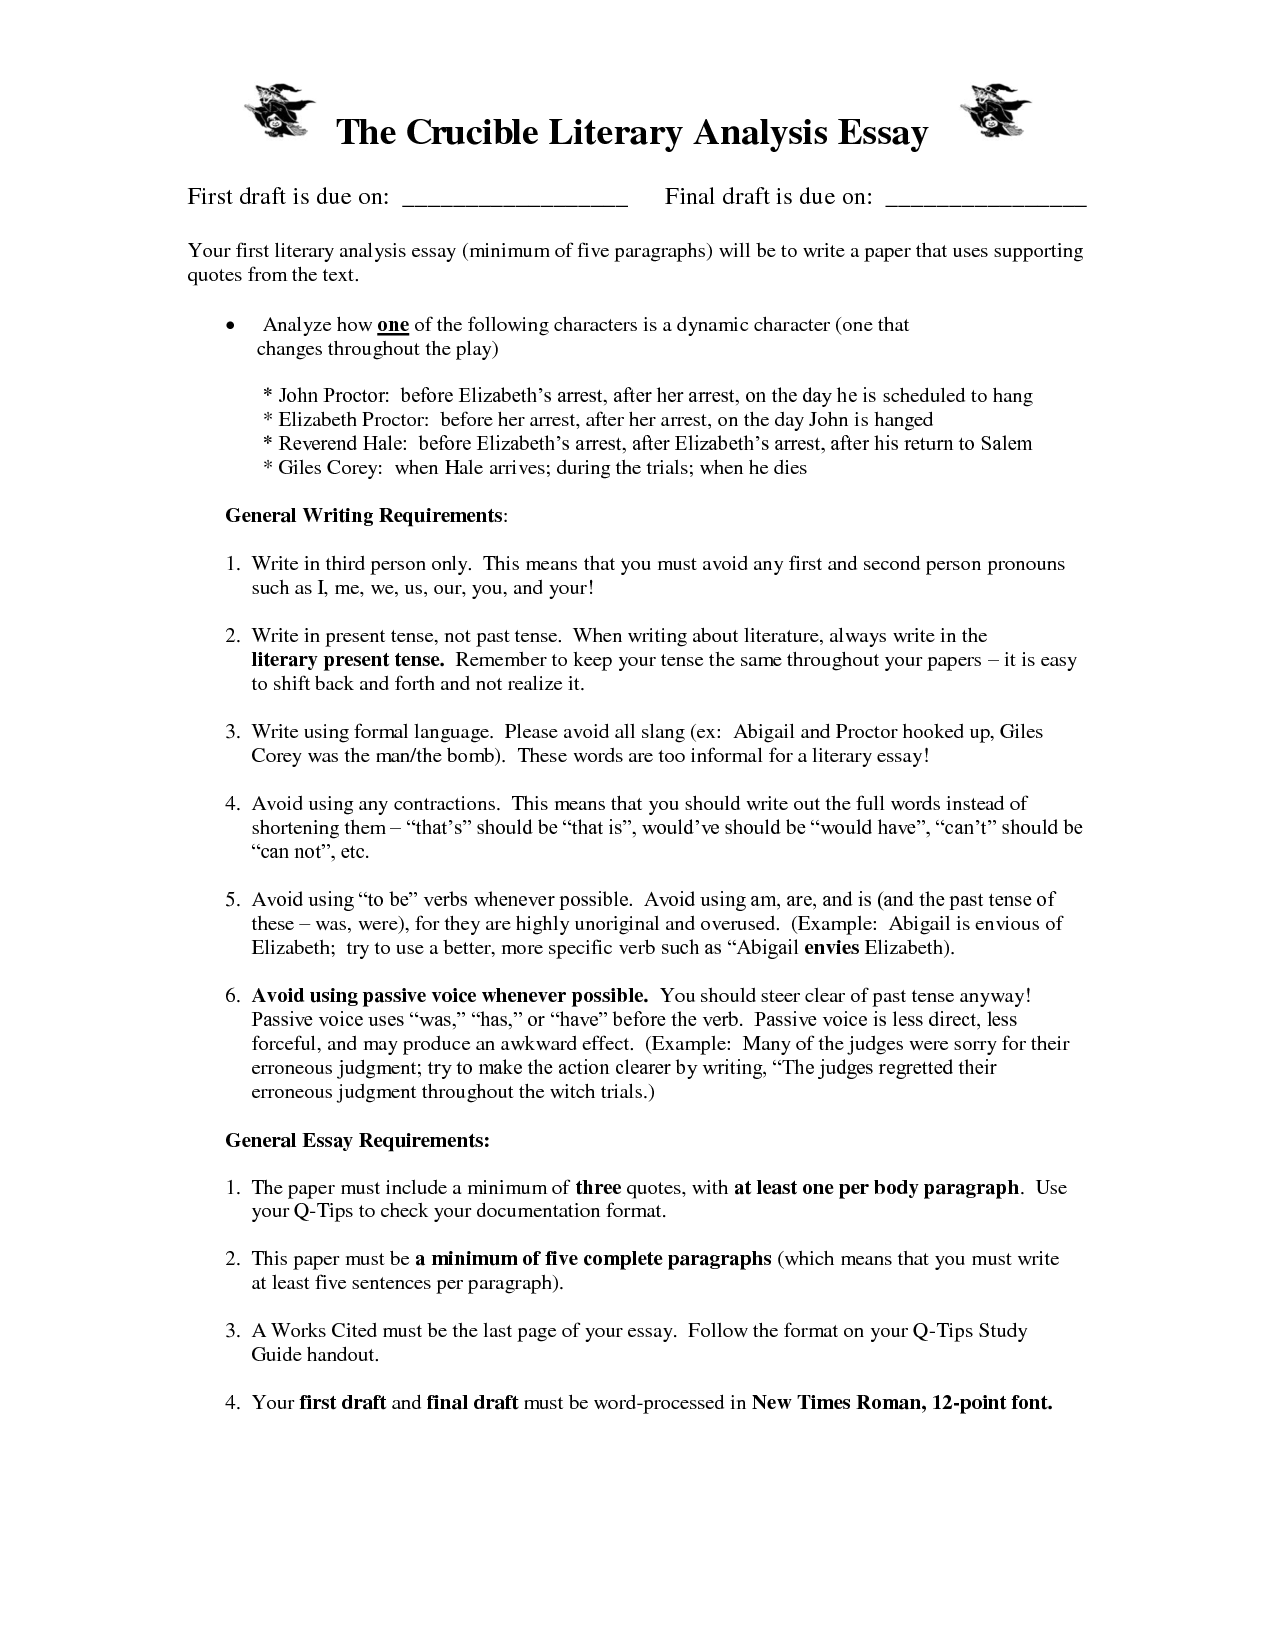 007 The Crucible Essay Topics Example Shocking Topic Sentences Analytical Writing Prompts Full